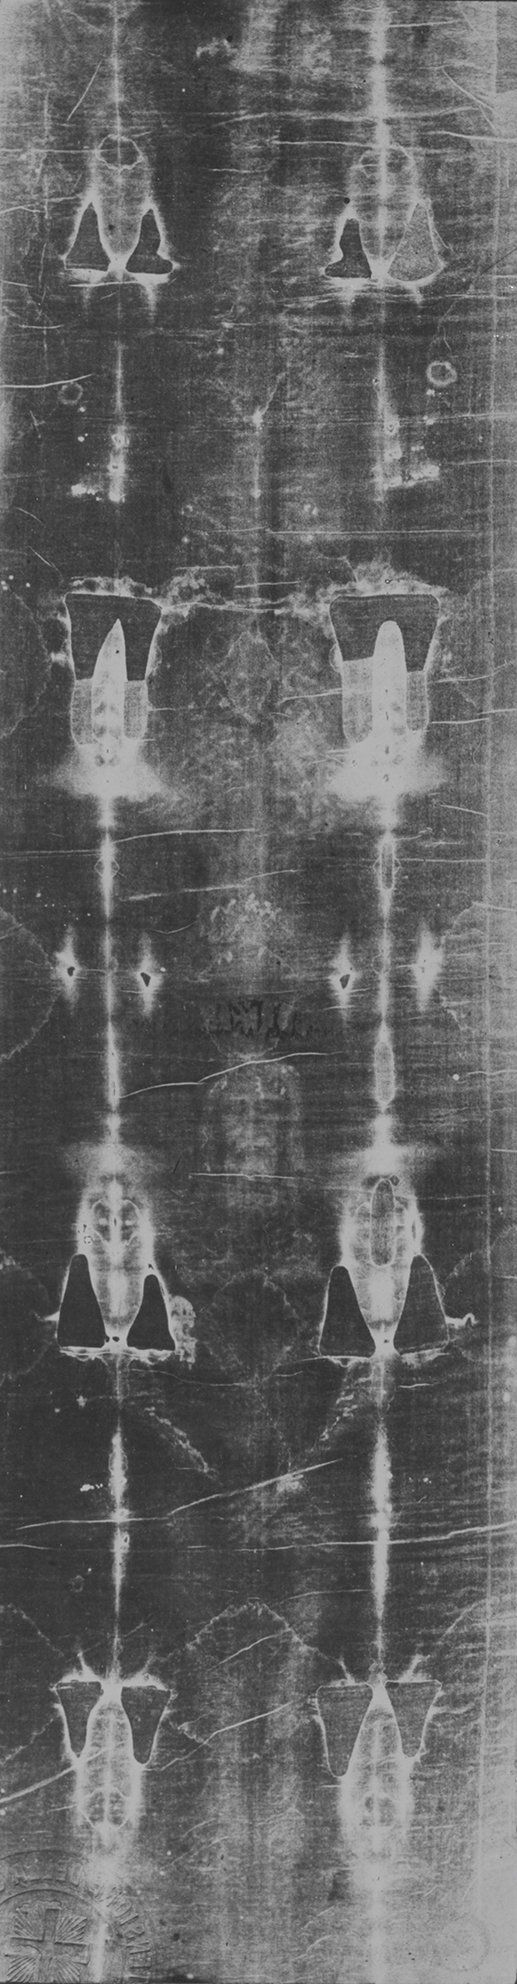 The Shroud of Turin, Turin: imprint of the face and back. Image created by a reverse of the silver negative on glass plates b